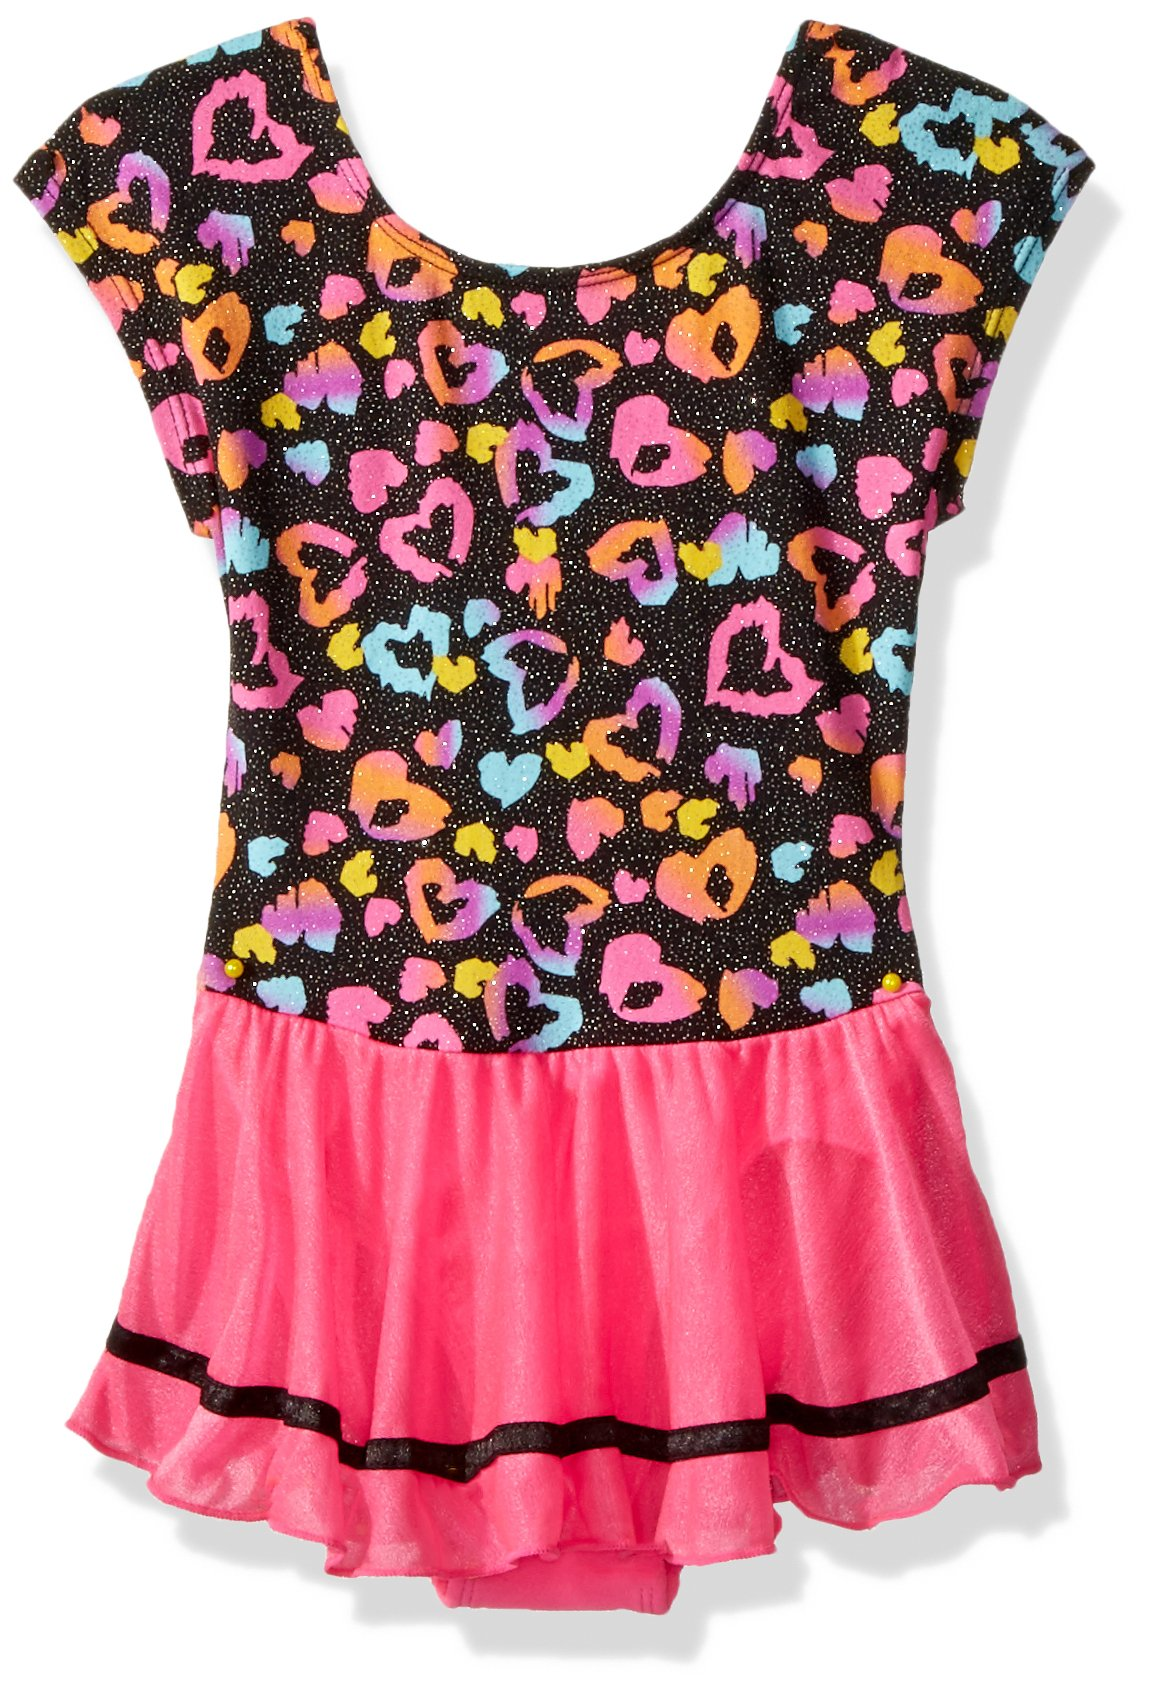 Jacques Moret Little Girls' Classic Short Sleeve Skirted Leotard, Spotted Love Printed Wiith Pink Skirt, S